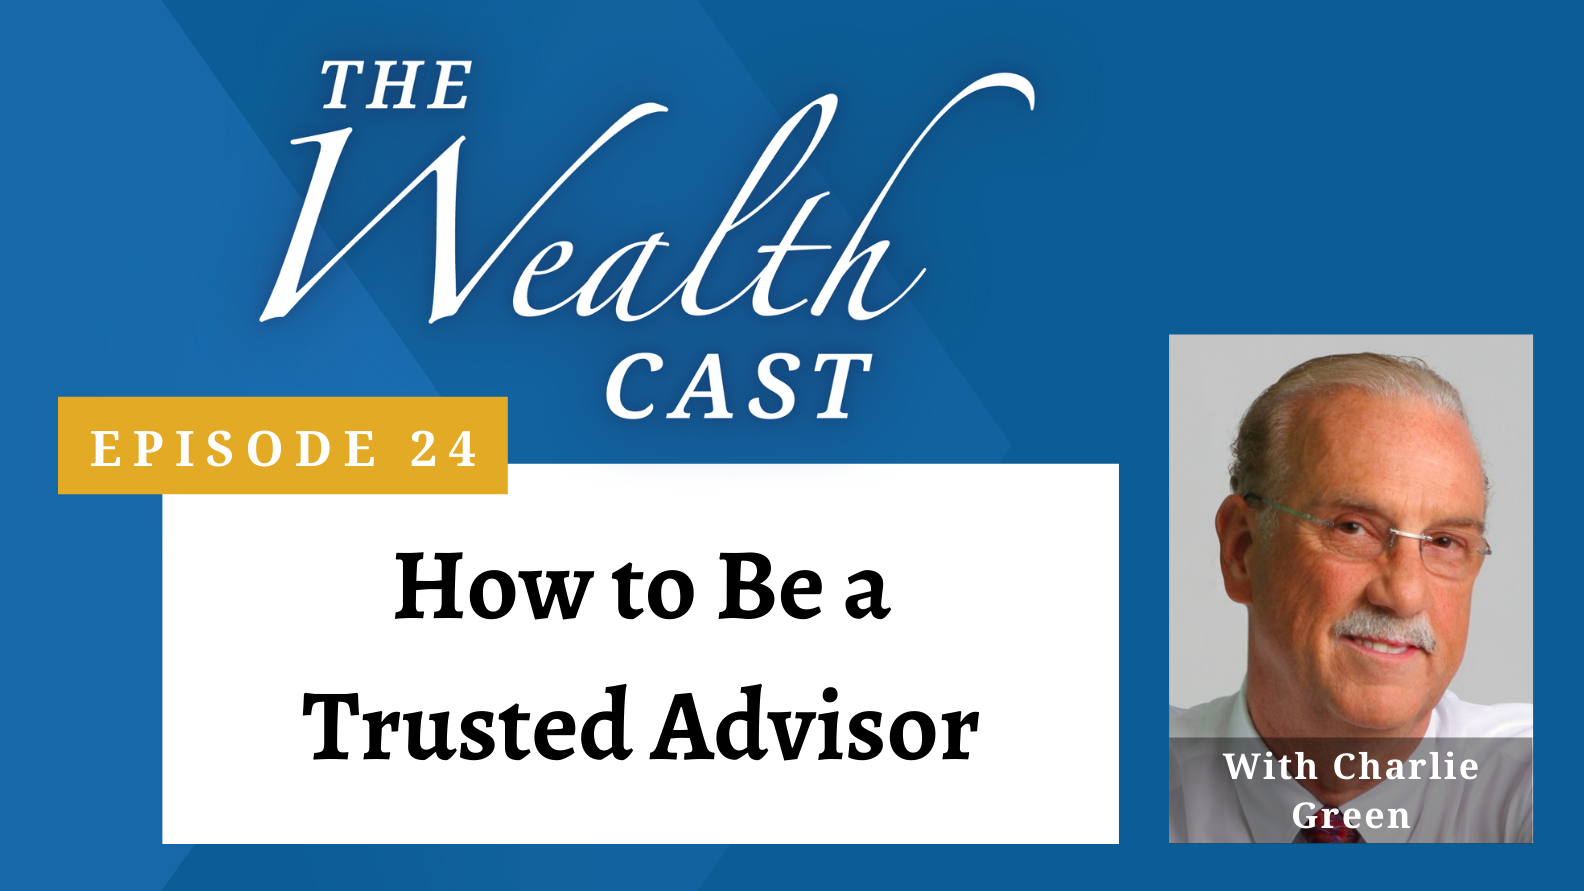 The Wealth Cast Episode 24 - How to Be a Trusted Advisor With Charlie Green